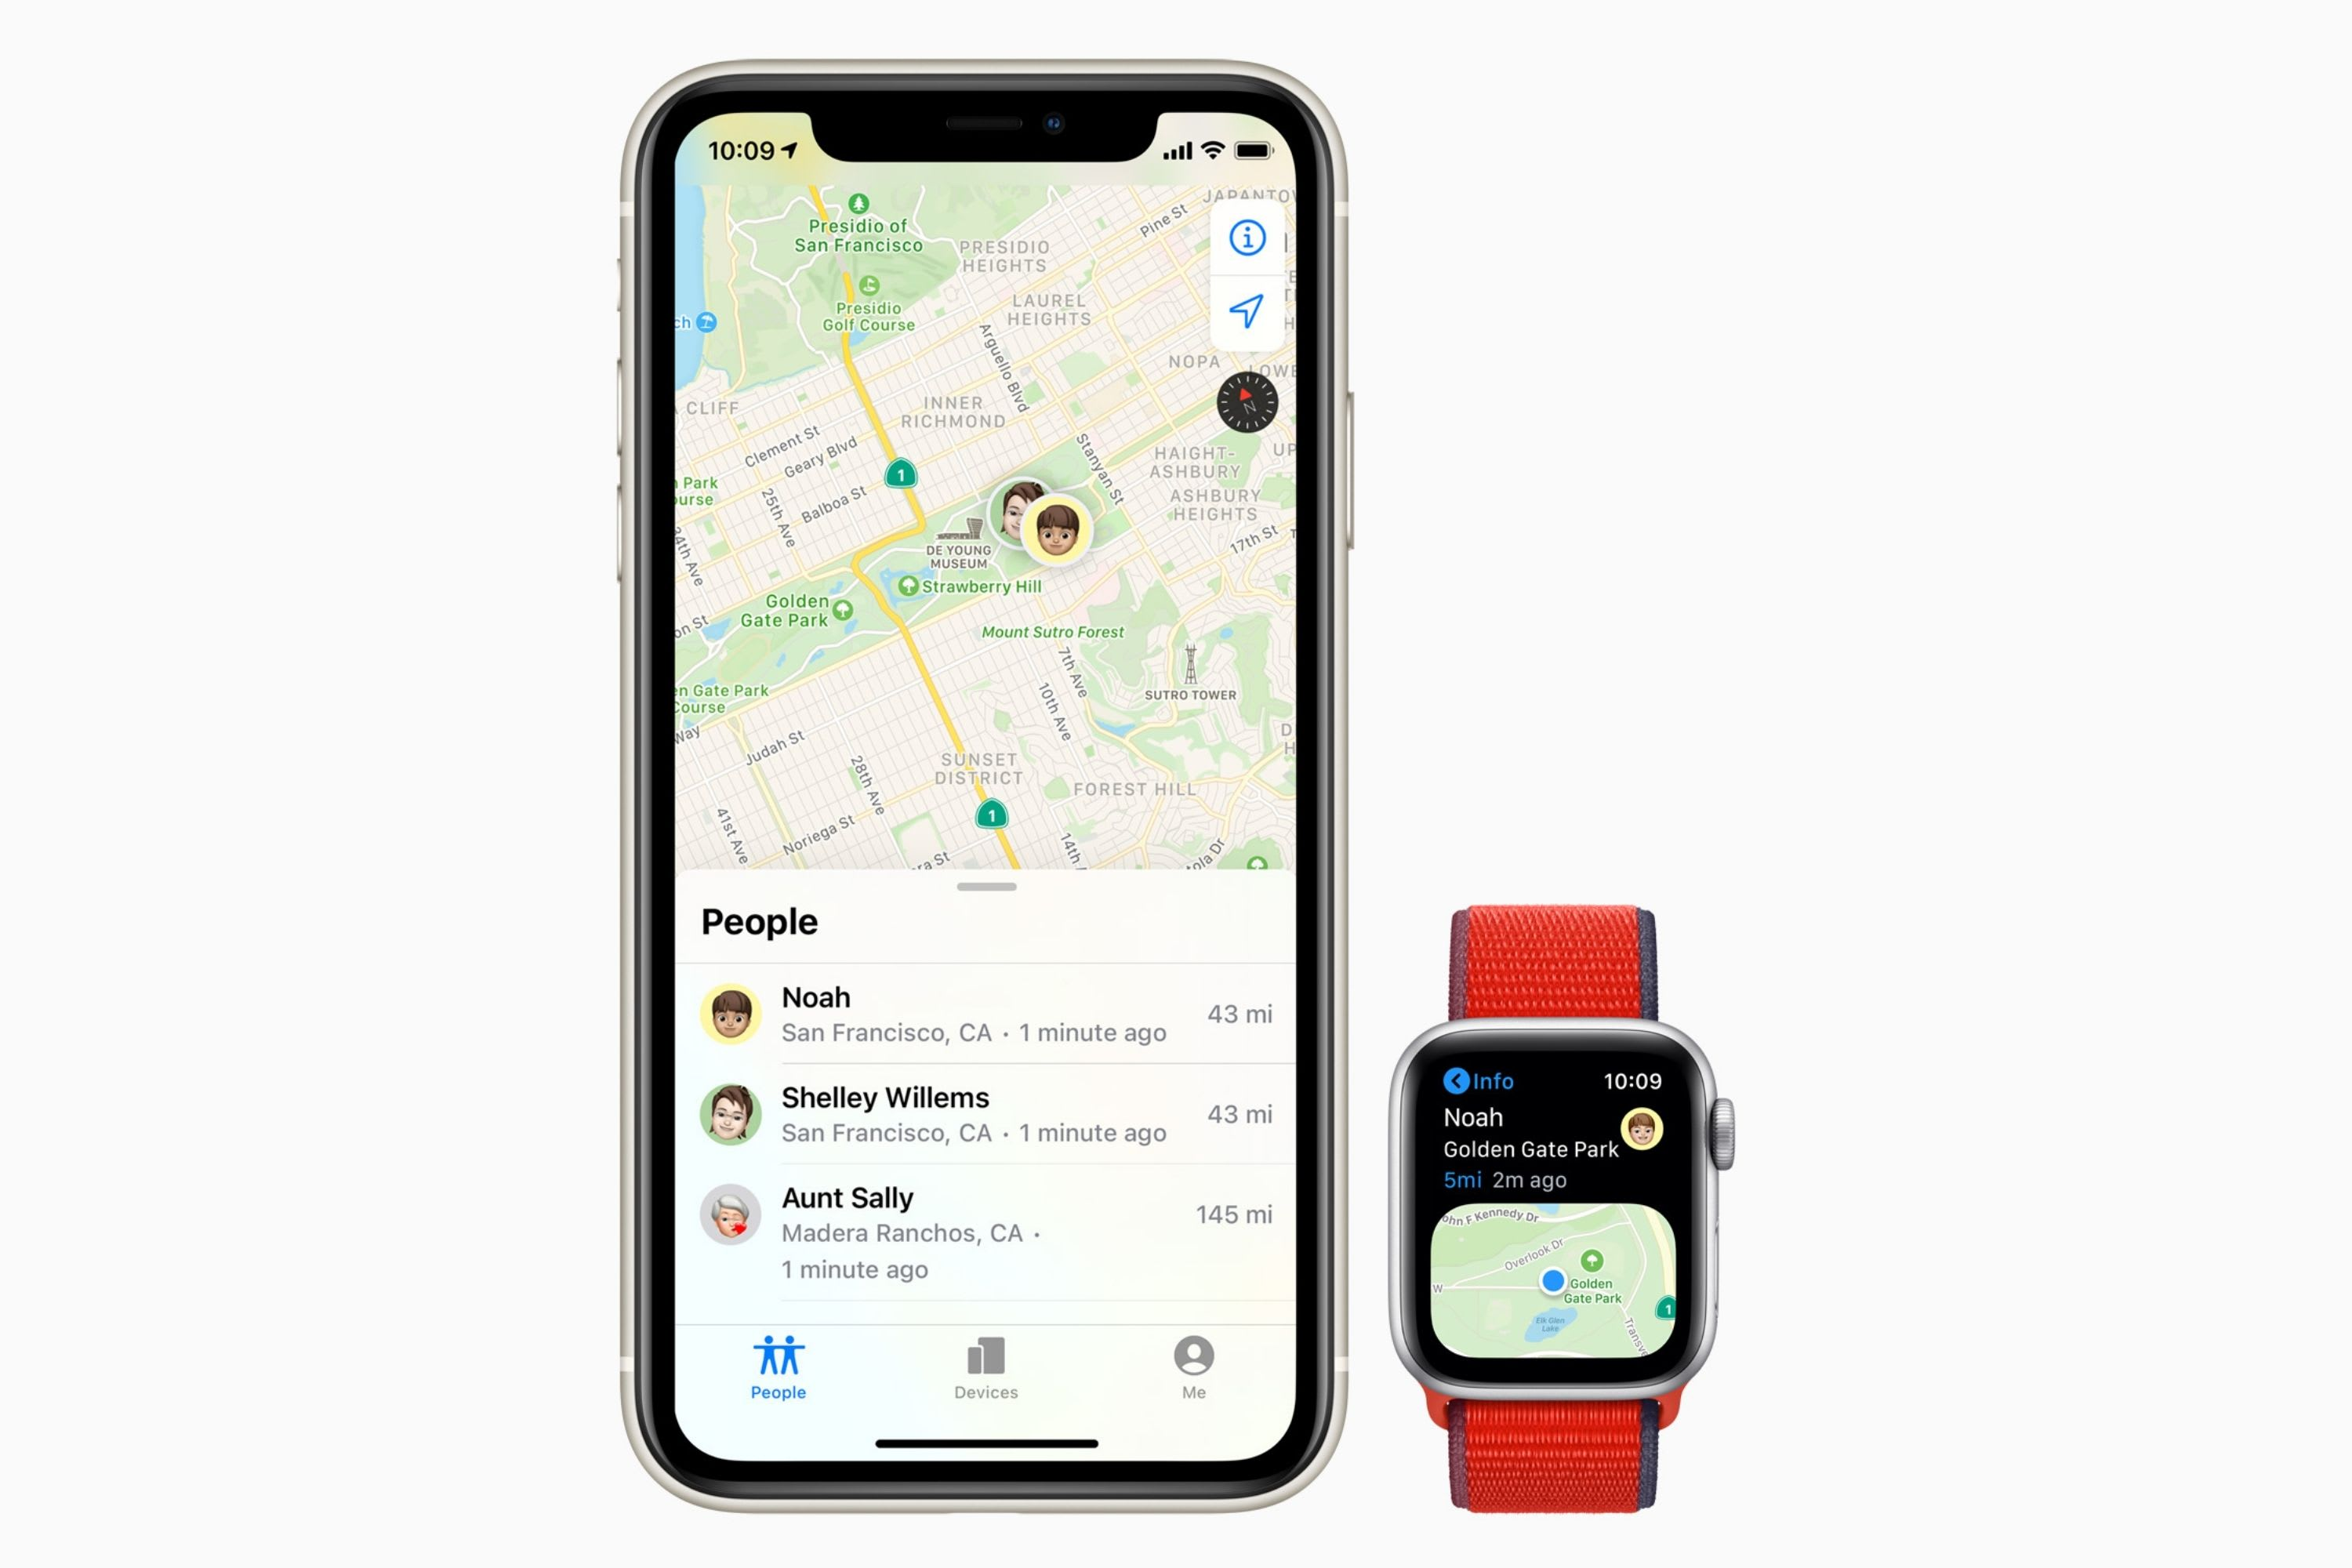 appleone-and-family-setup-coming-to-watchos-7-and-ipados-14-20200915-5